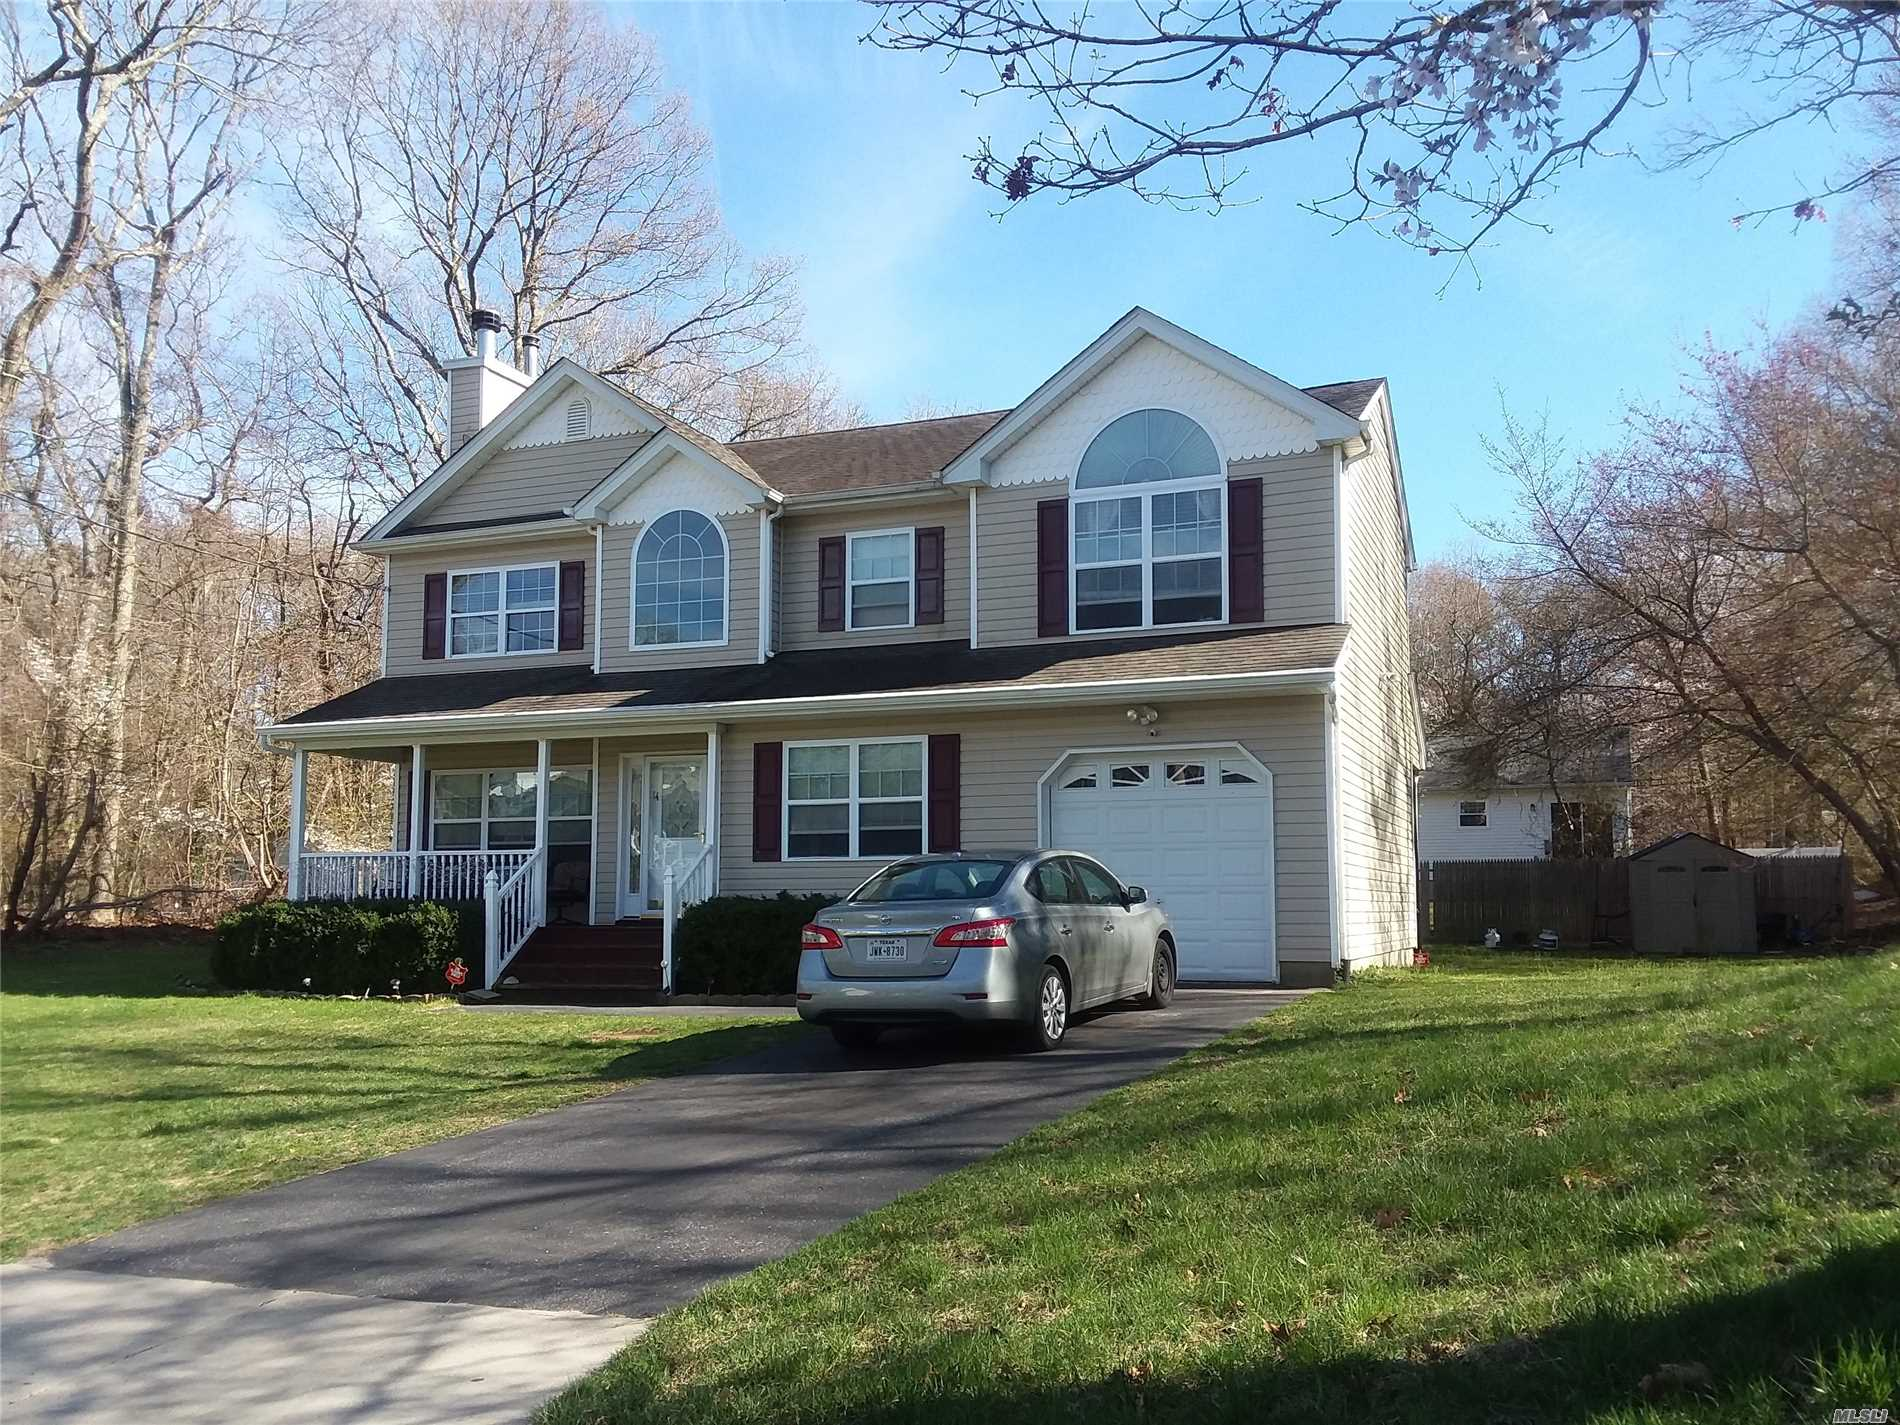 Come home to this spacious, well maintained Colonial. Situated on a cul de sac features include Living Rm., Formal Dining Rm., Spacious EIK, Hardwood floors throughout, Central AC, Finished Basement w/OSE and much more.